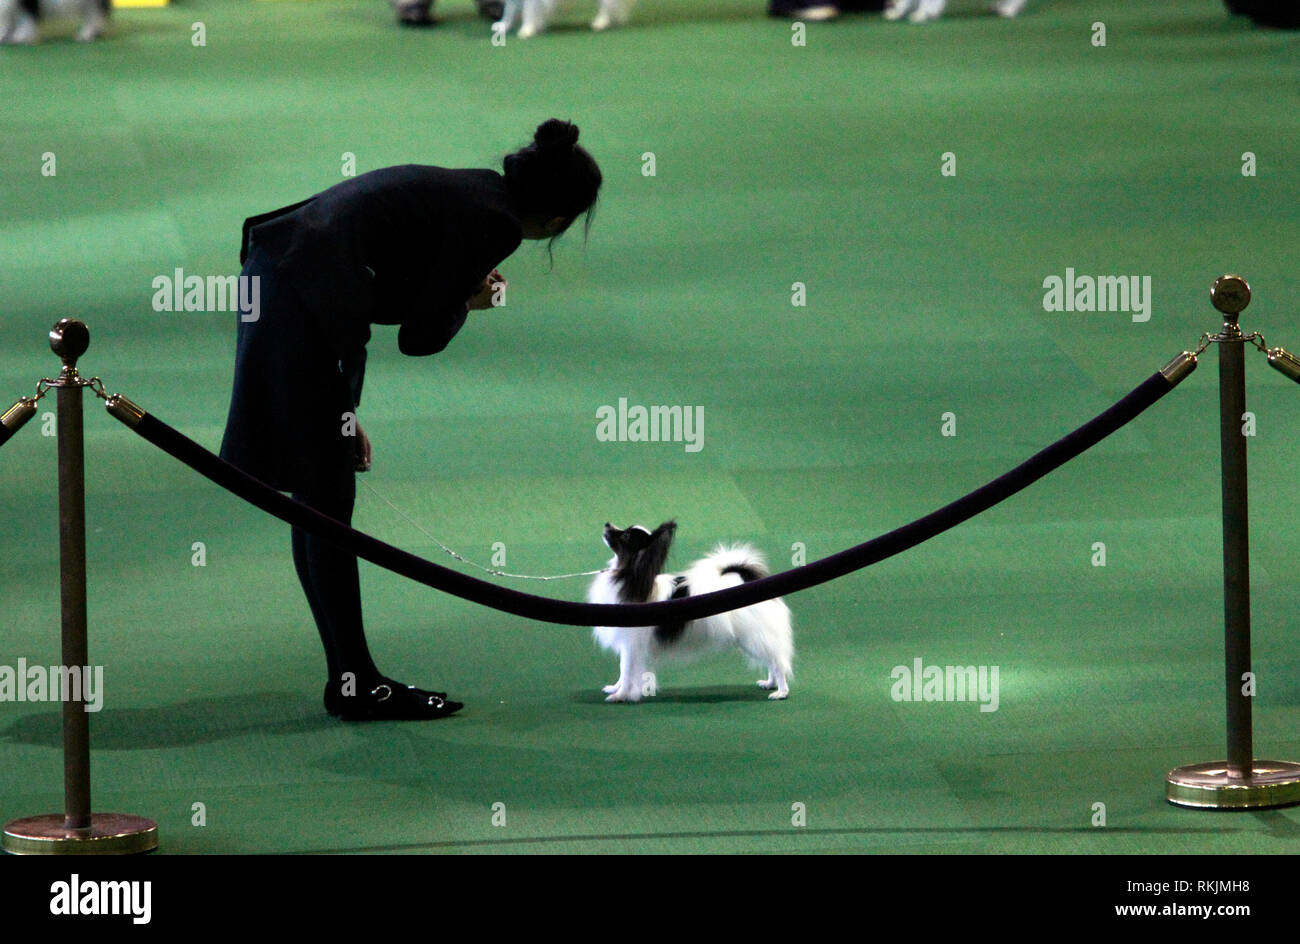 New York, United States. 11th Feb, 2019. Westminster Dog Show - New York City, 11 February, 2019: Handlers with Papillion breed dogs awaiting judging during the Best of Breed Competition at the 143rd Annual Westminster Dog Show. Credit: Adam Stoltman/Alamy Live News Stock Photo